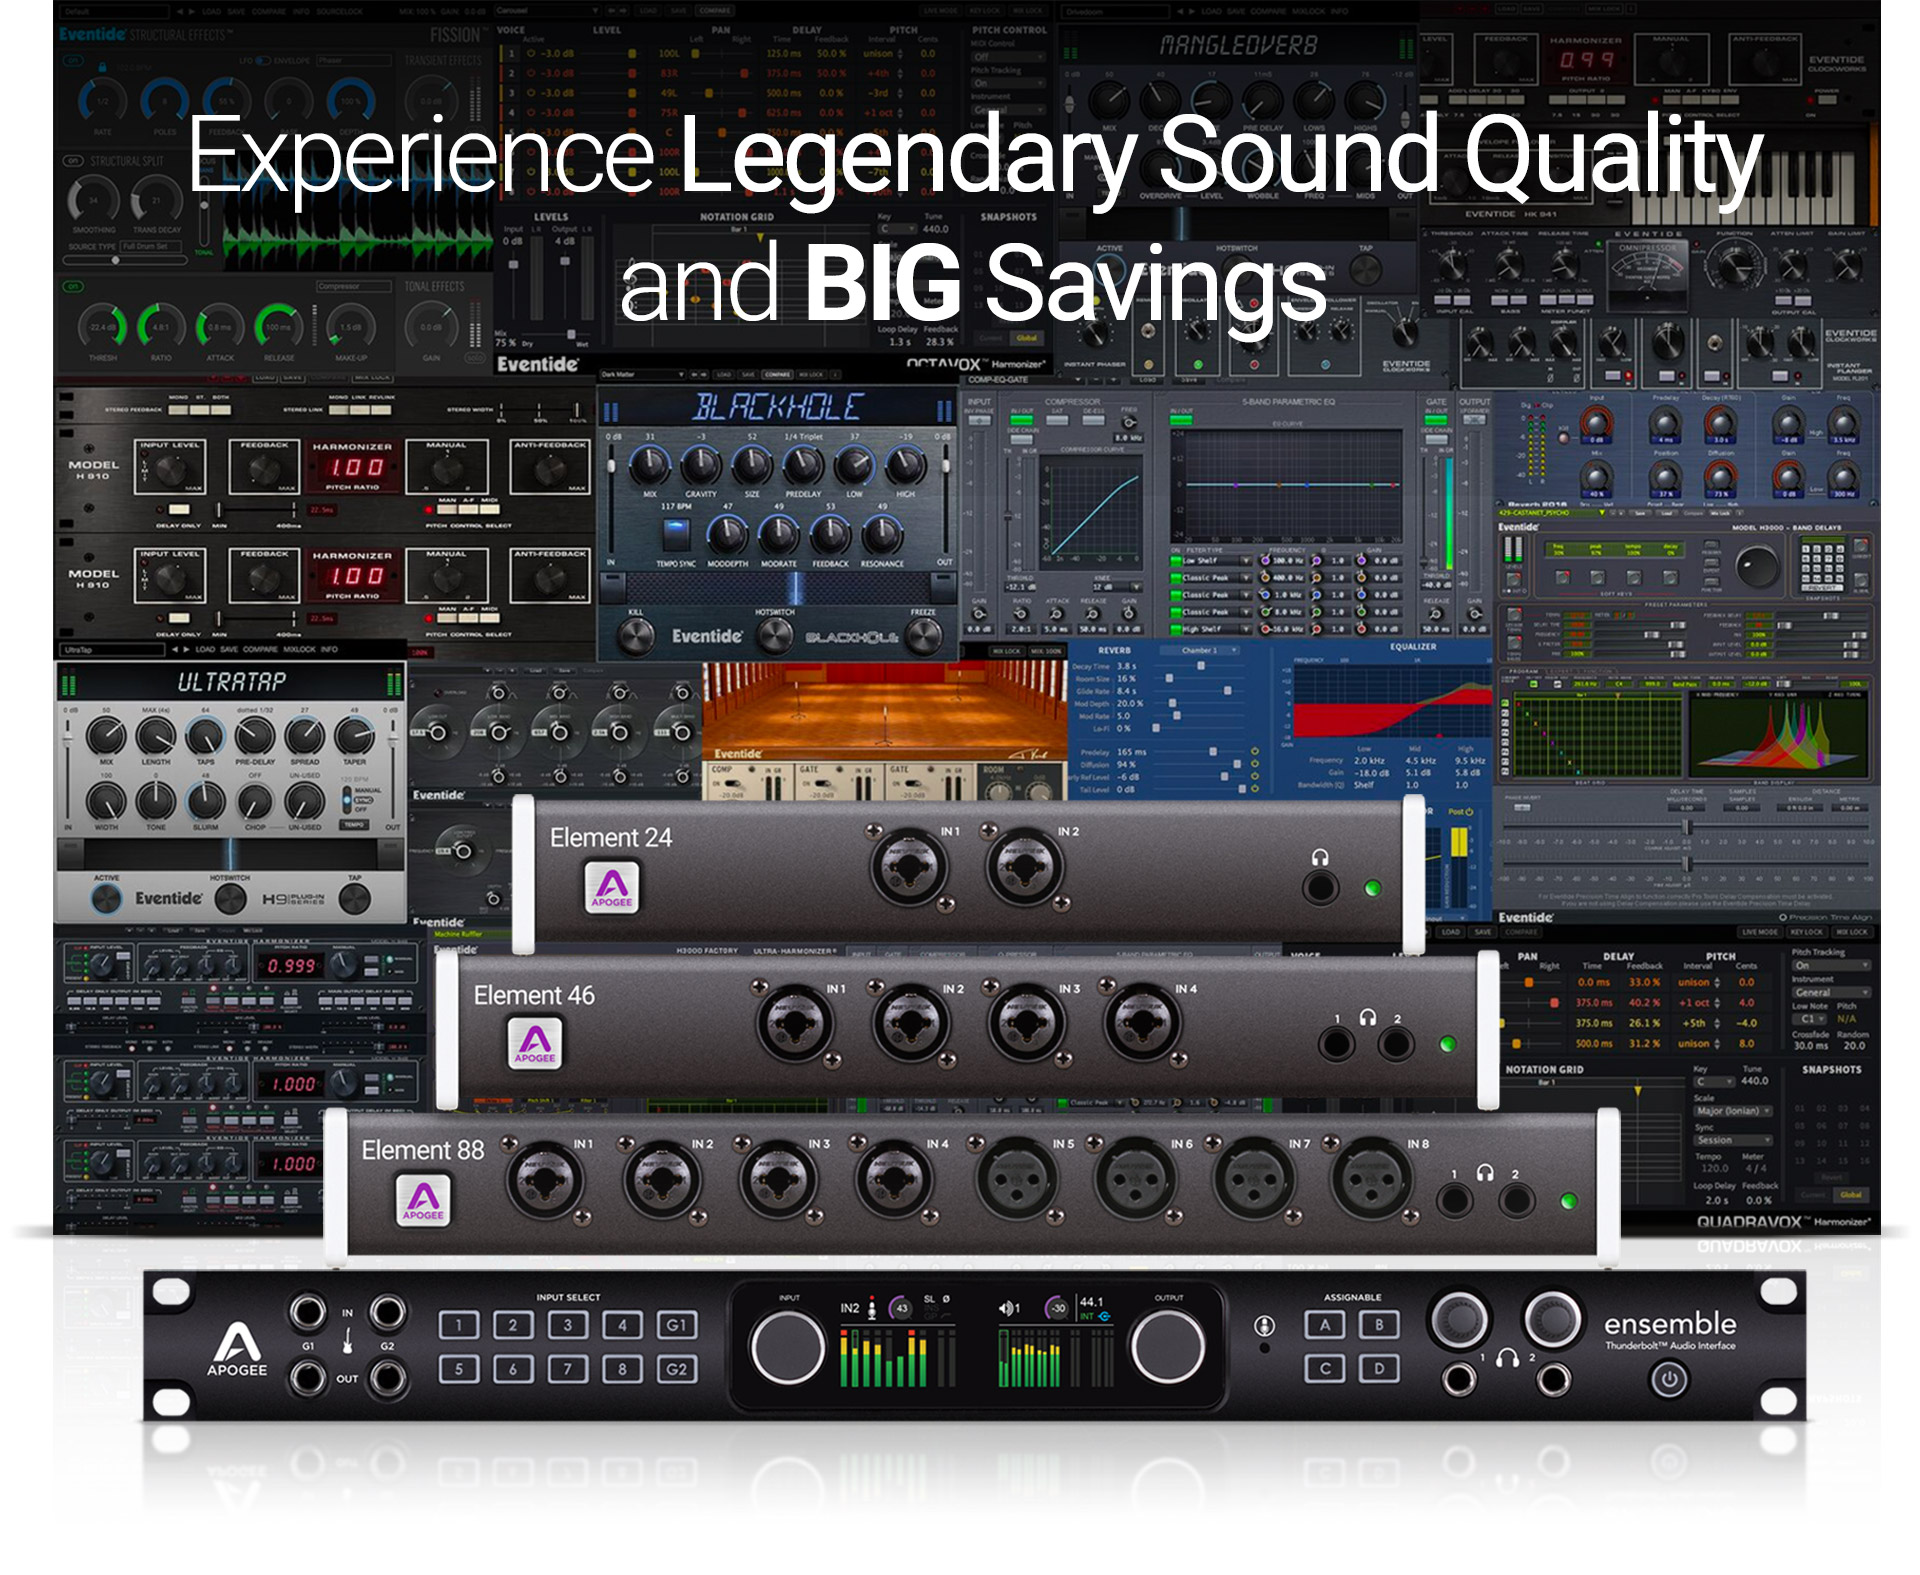 Buy Apogee Ensemble or Element and get Eventide plugins free for 6 months